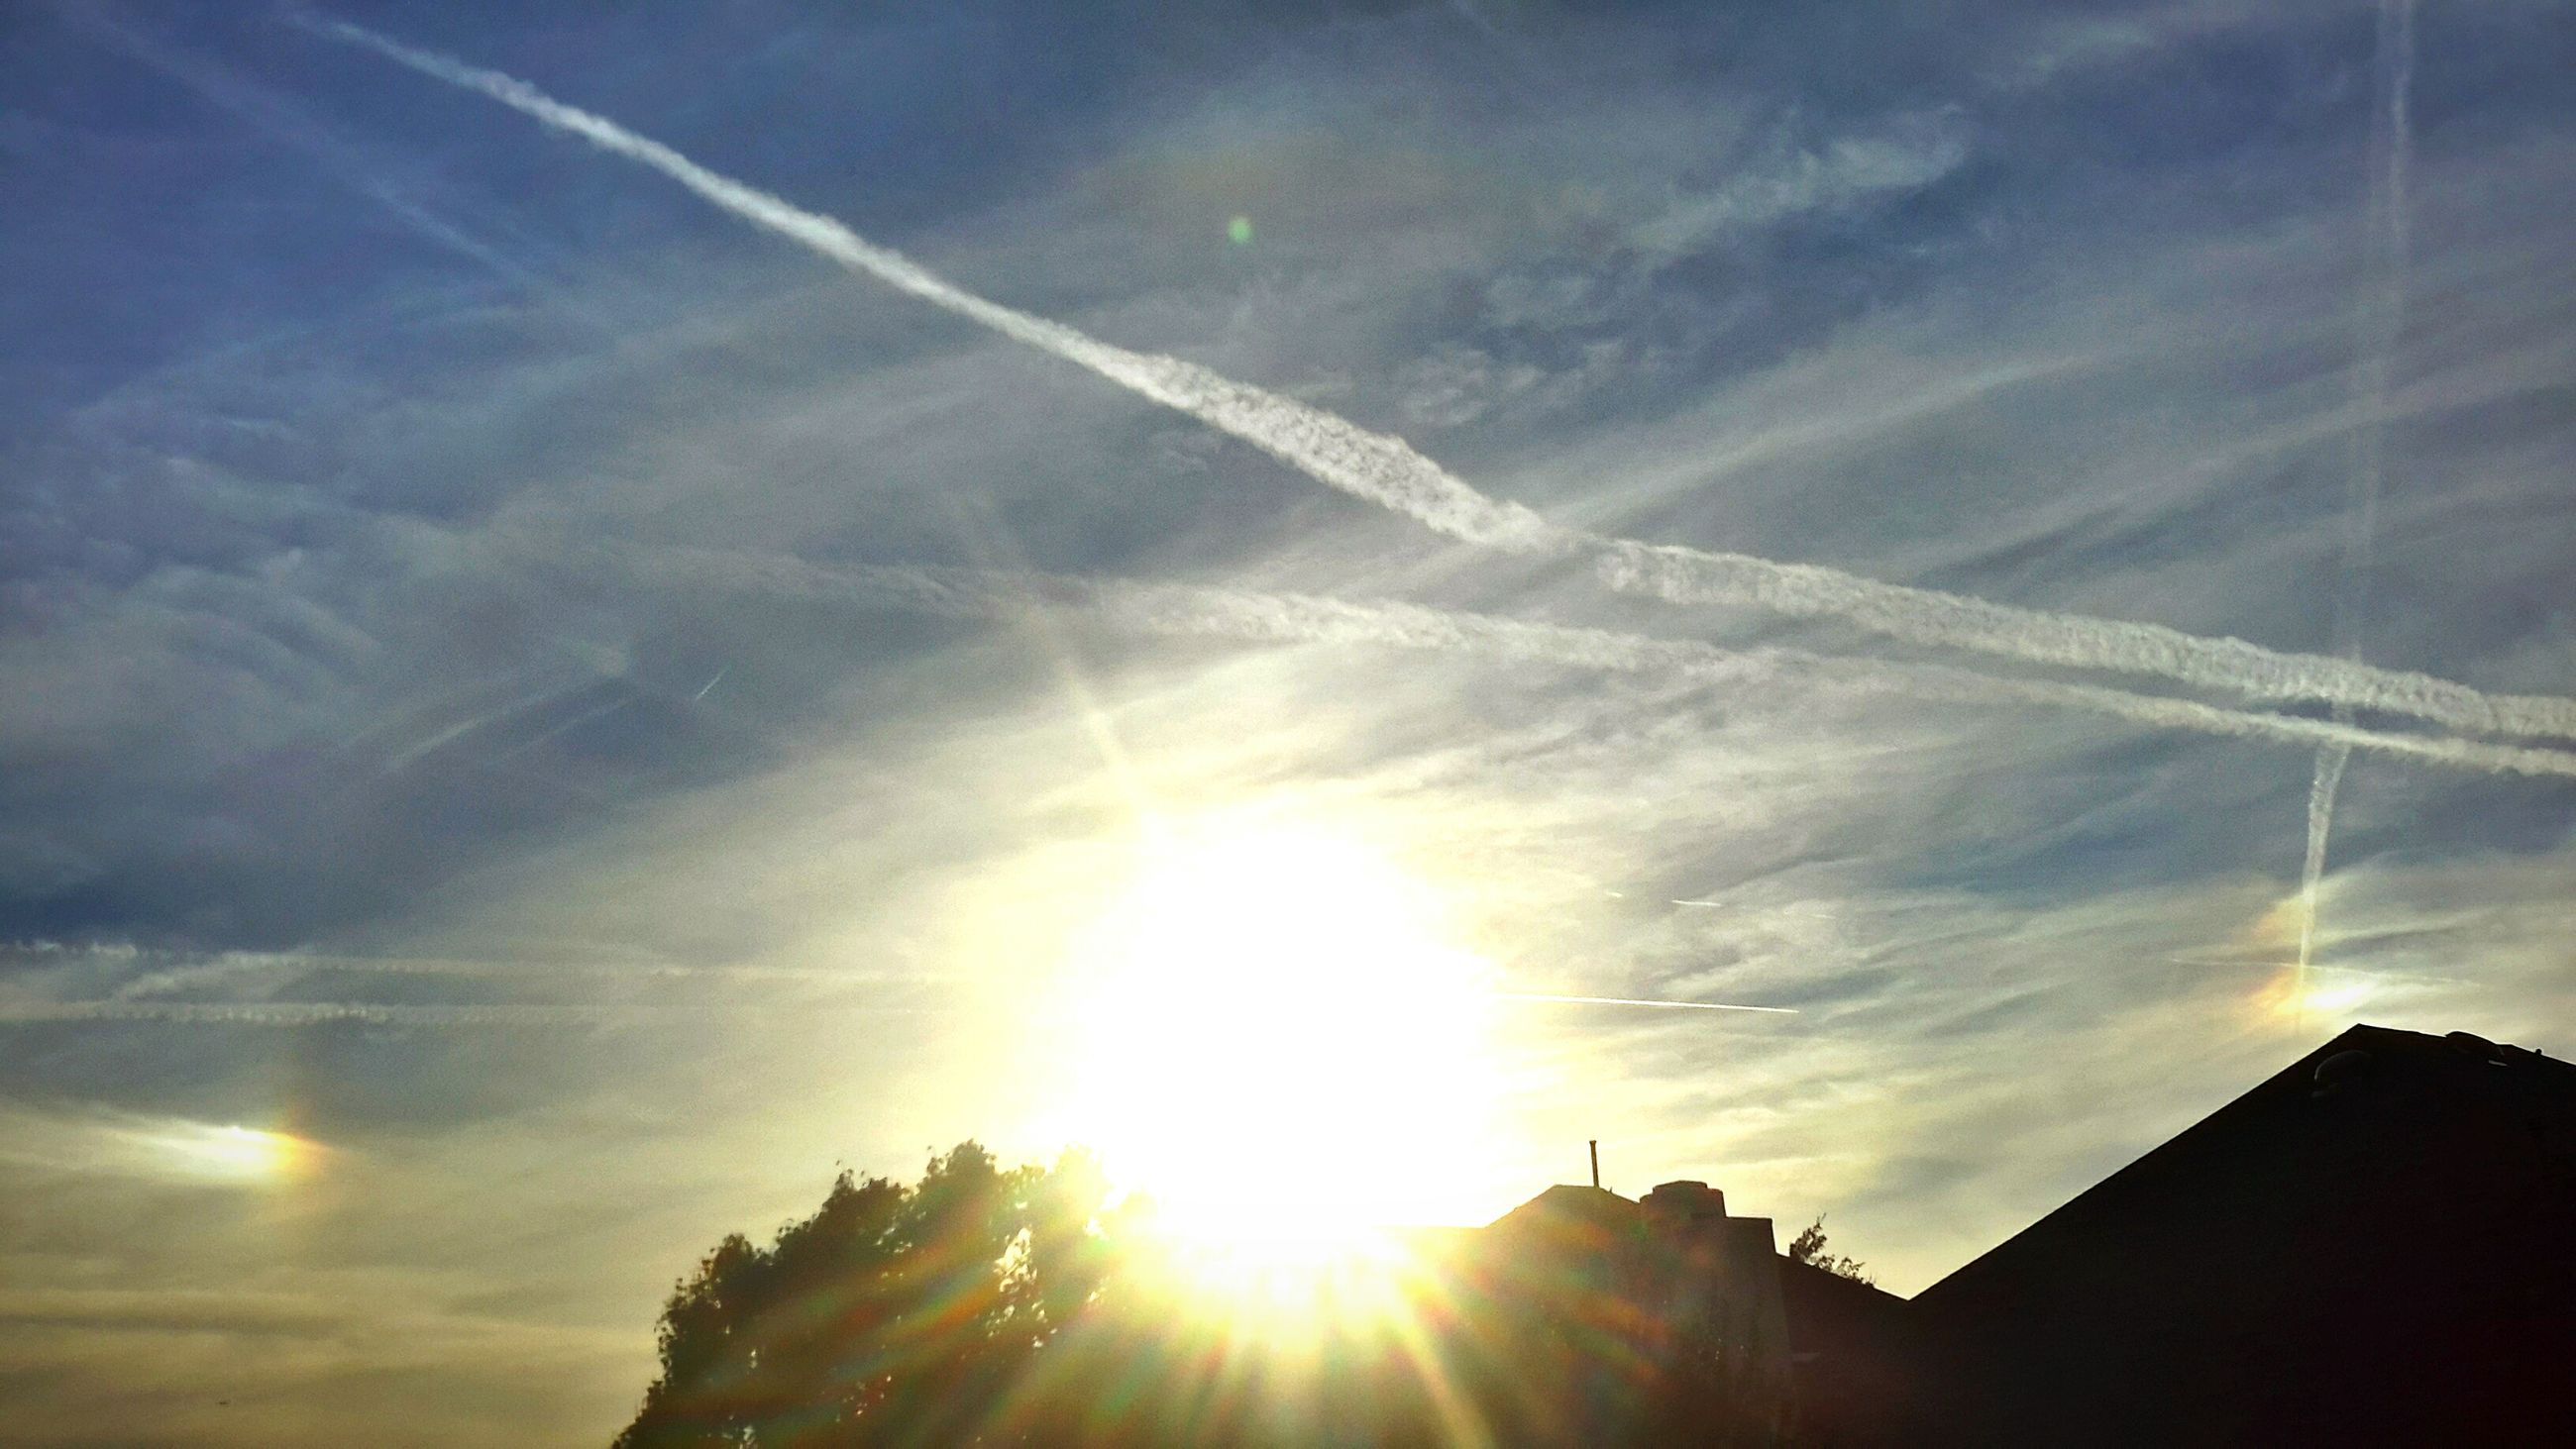 sun, sunbeam, lens flare, sunlight, low angle view, built structure, sky, building exterior, architecture, silhouette, bright, vapor trail, cloud - sky, sunset, sunny, nature, outdoors, beauty in nature, cloud, day